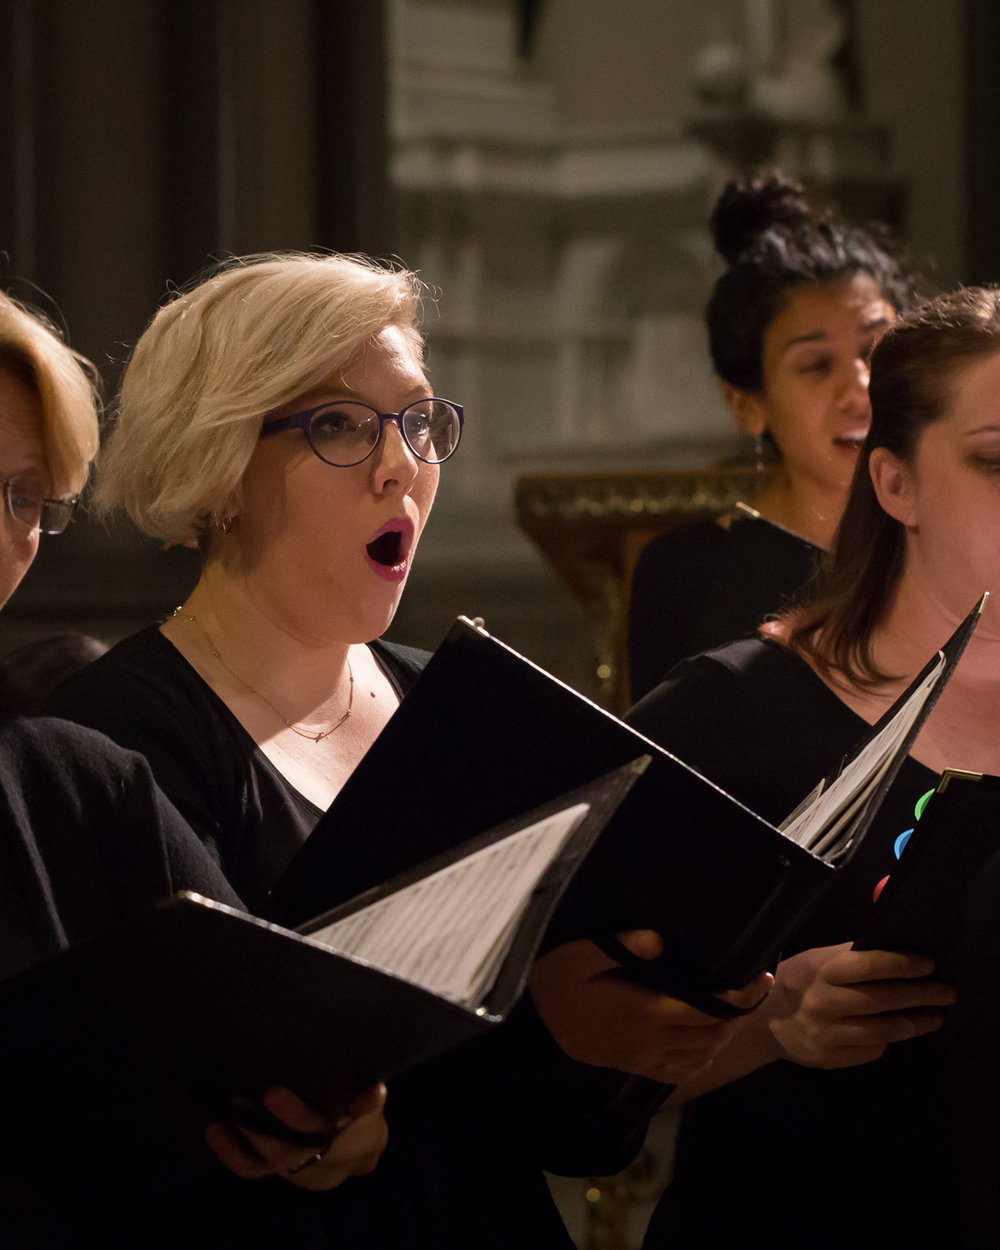 Chicago Chorale offers audiences sensitive, thought-provoking performances of outstanding choral music. -